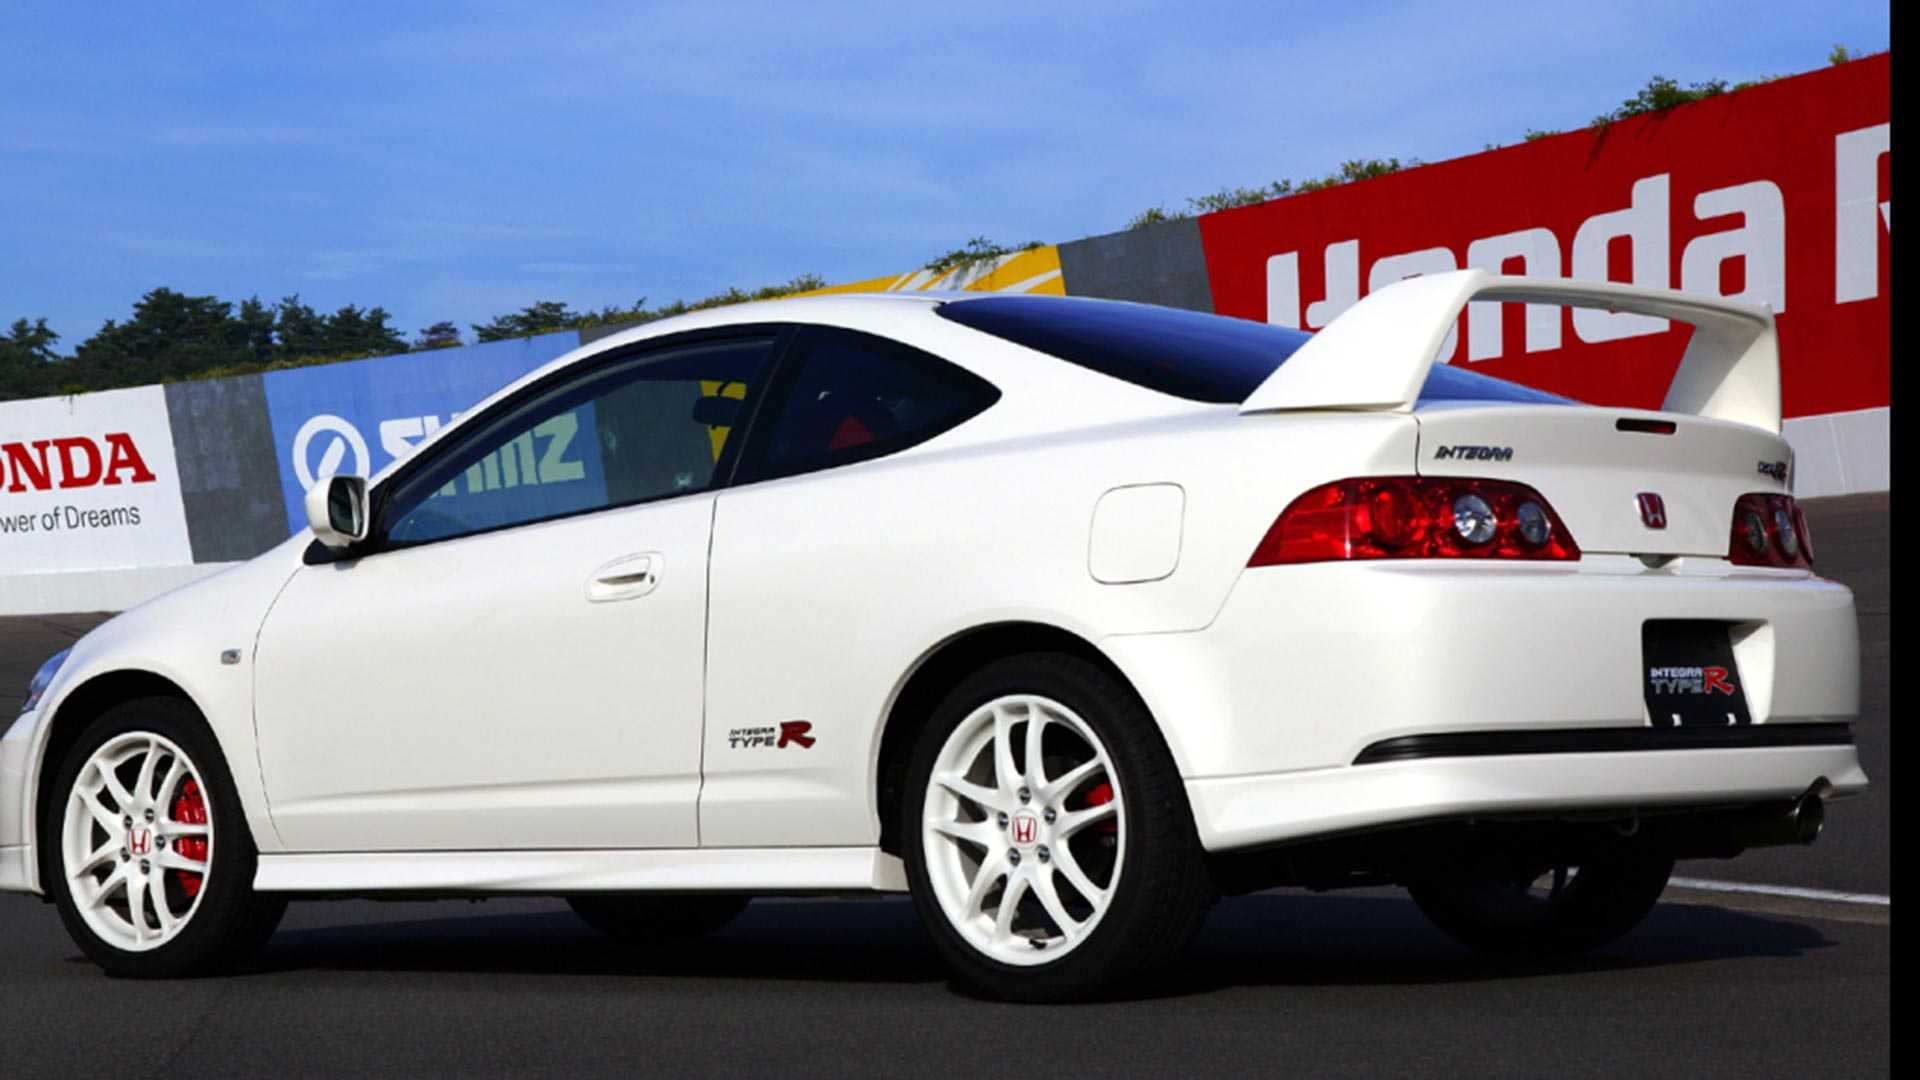 Hear The Honda Integra Type R Scream To 9 000 Rpm In Acceleration Tests